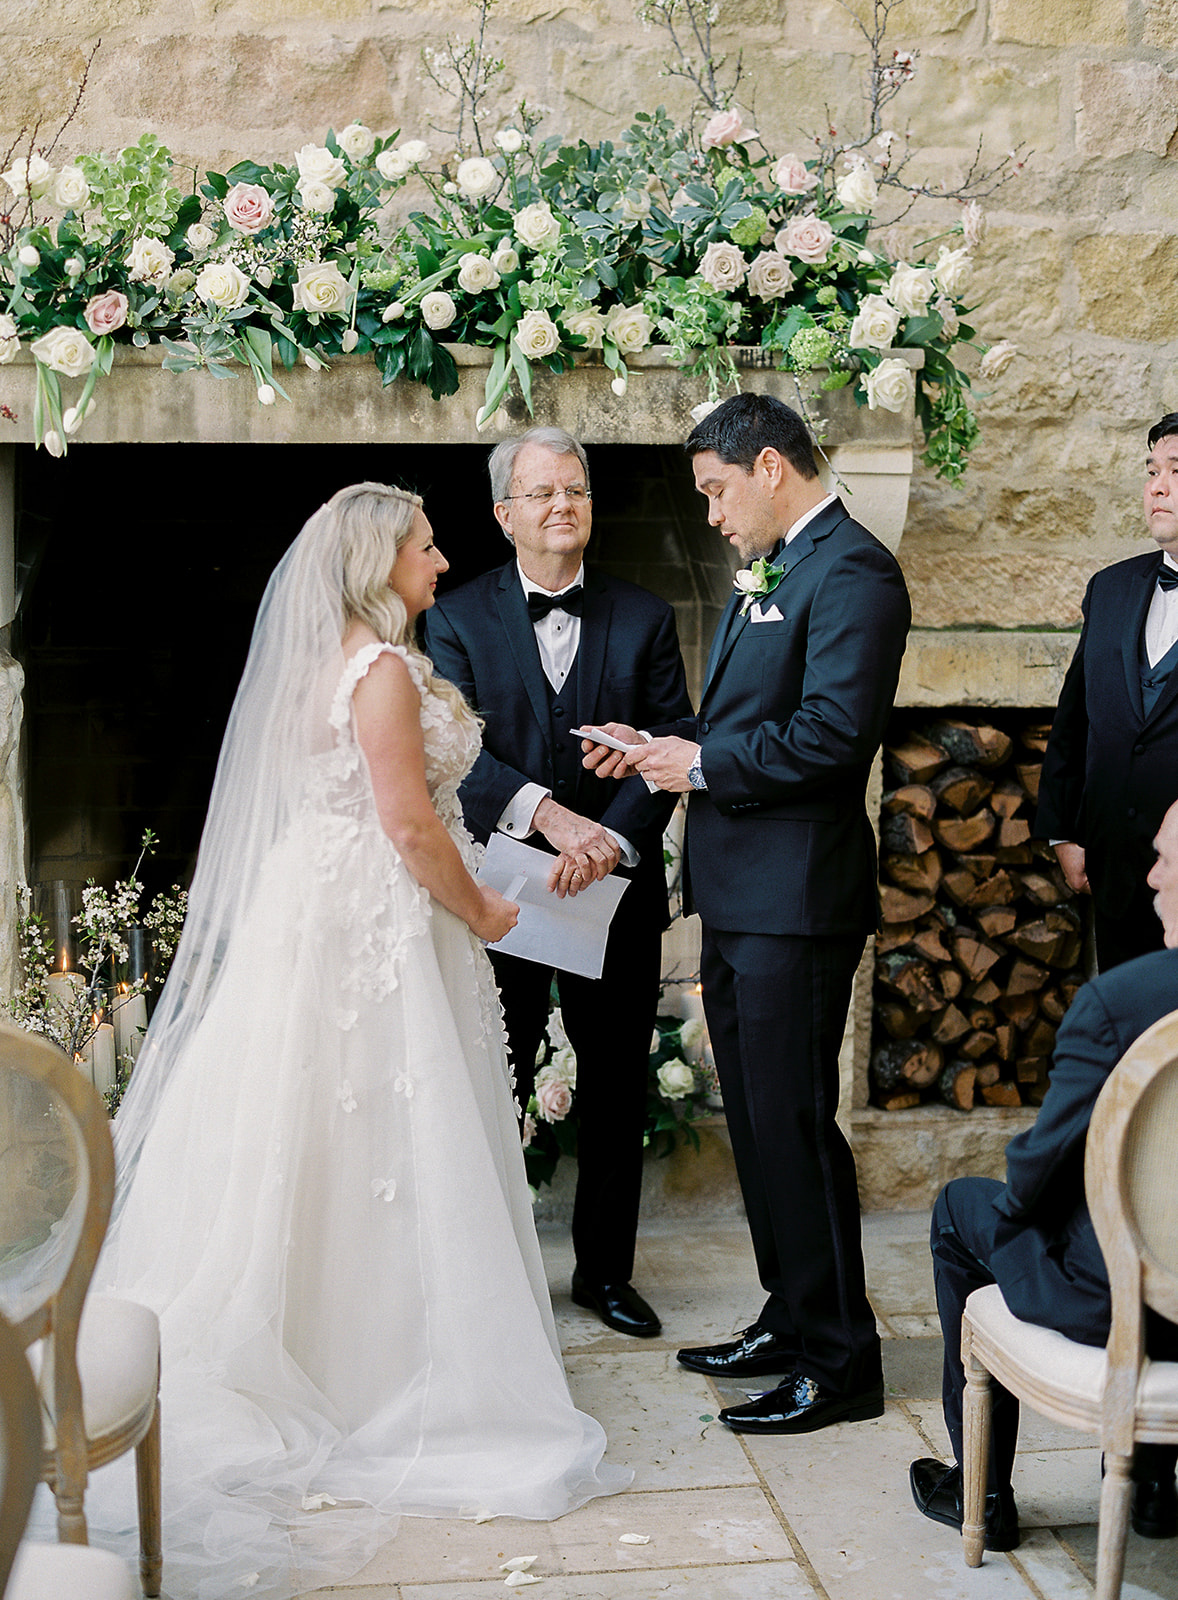 groom saying his vows to bride during wedding ceremony